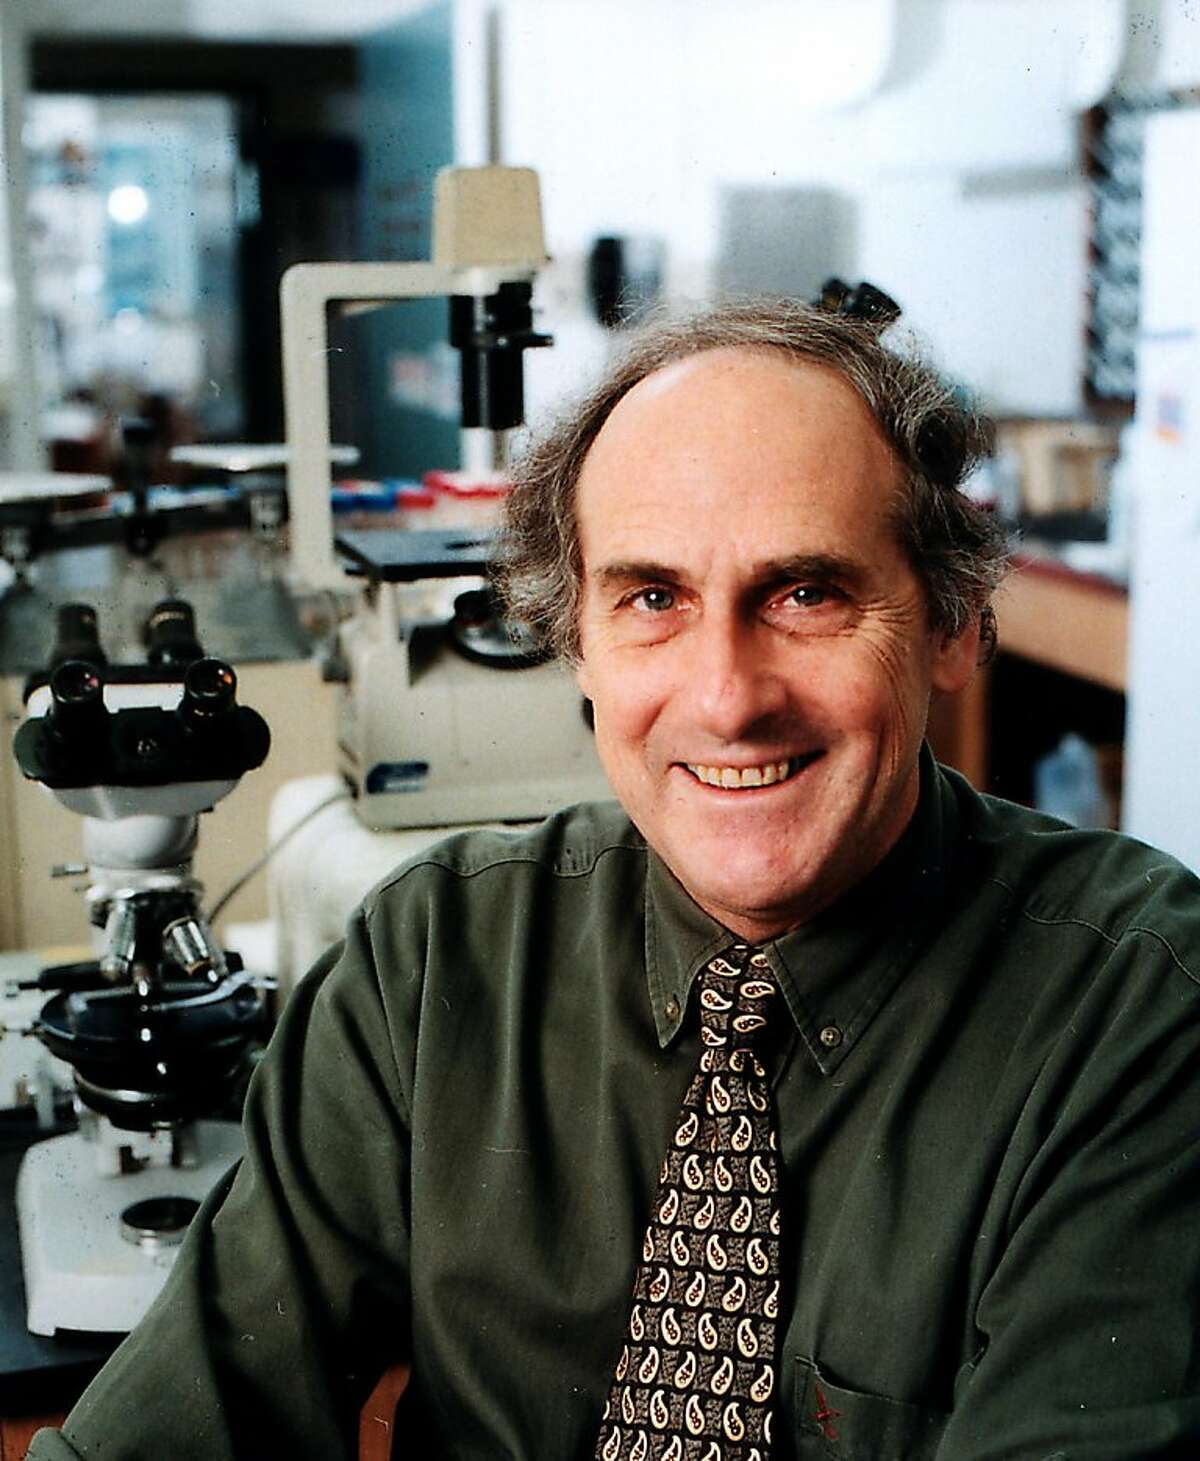 UNDATED, UNSPECIFIED LOCATION: In this handout provided by Rockefeller University, Immunologist Ralph Steinman, M.D. poses for a photo in a science lab in this undated photograph. The Nobel Prize in Physiology or Medicine was awarded to Rockefeller University scientist Ralph Steinman for his work on cancer research. However Steinman, 68, passed away on September 30 after a four-year battle with pancreatic cancer. (Photo by Rockefeller University via Getty Images)